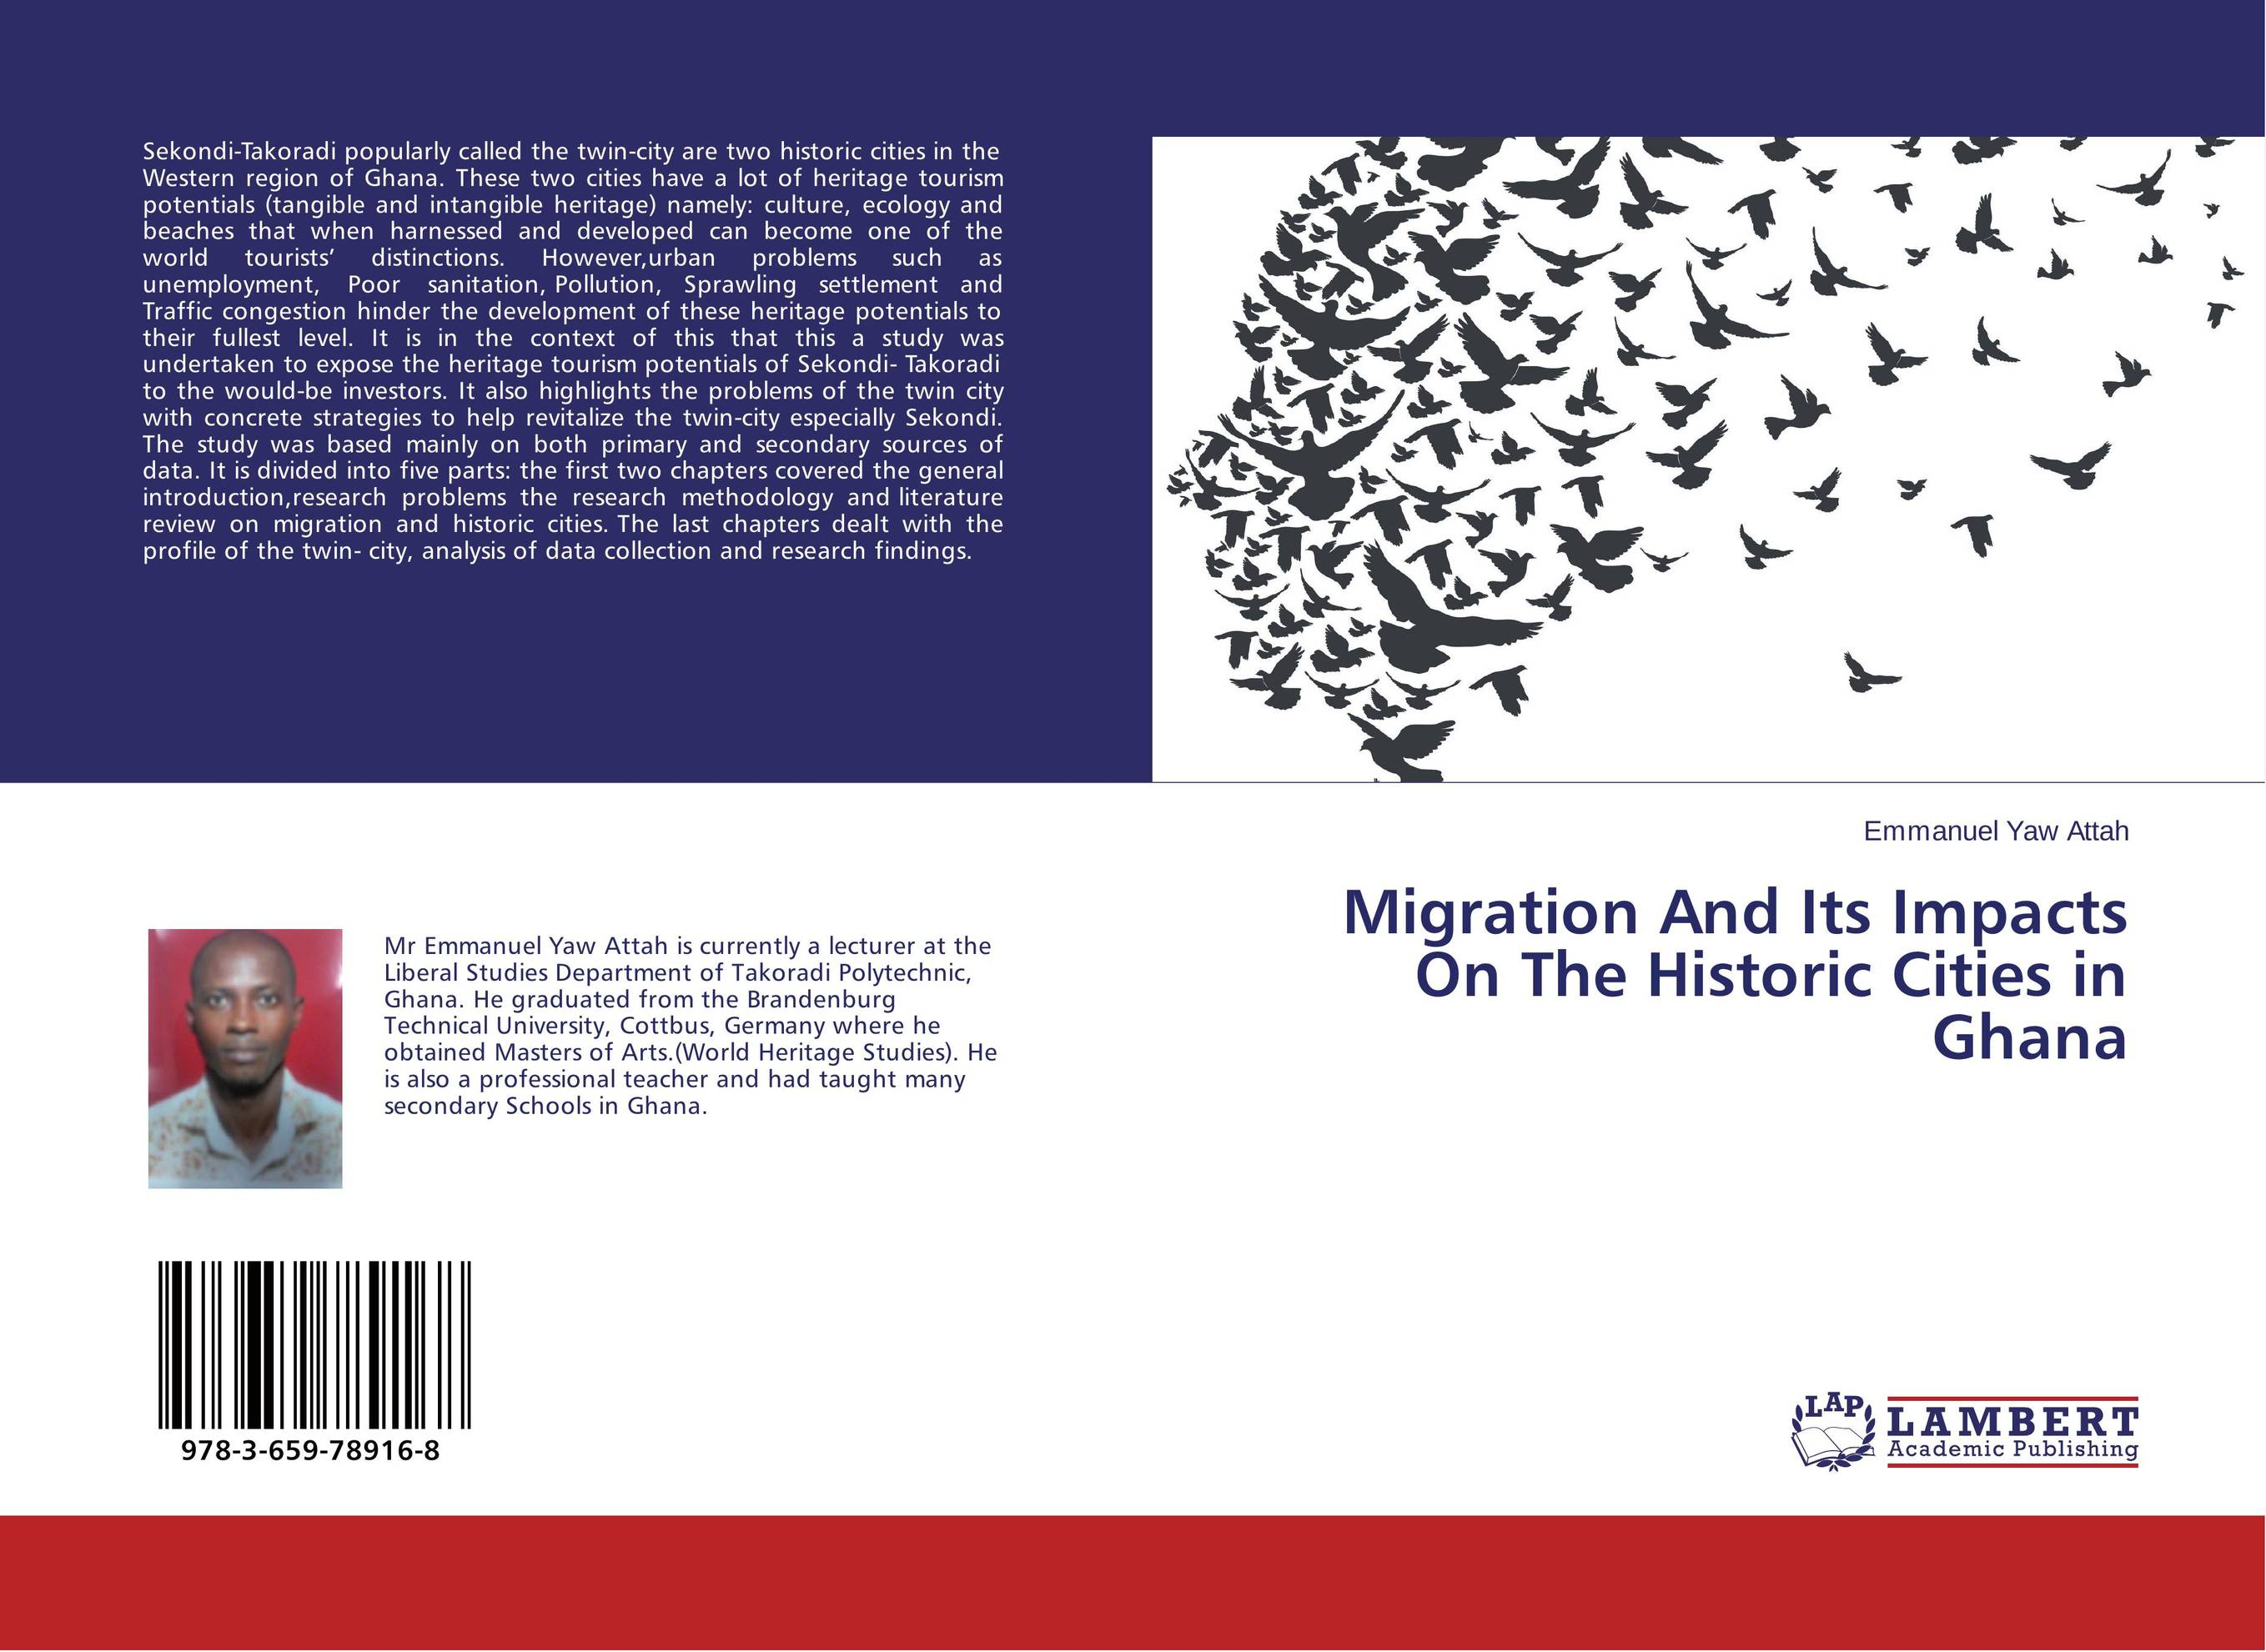 Migration And Its Impacts On The Historic Cities in Ghana point systems migration policy and international students flow